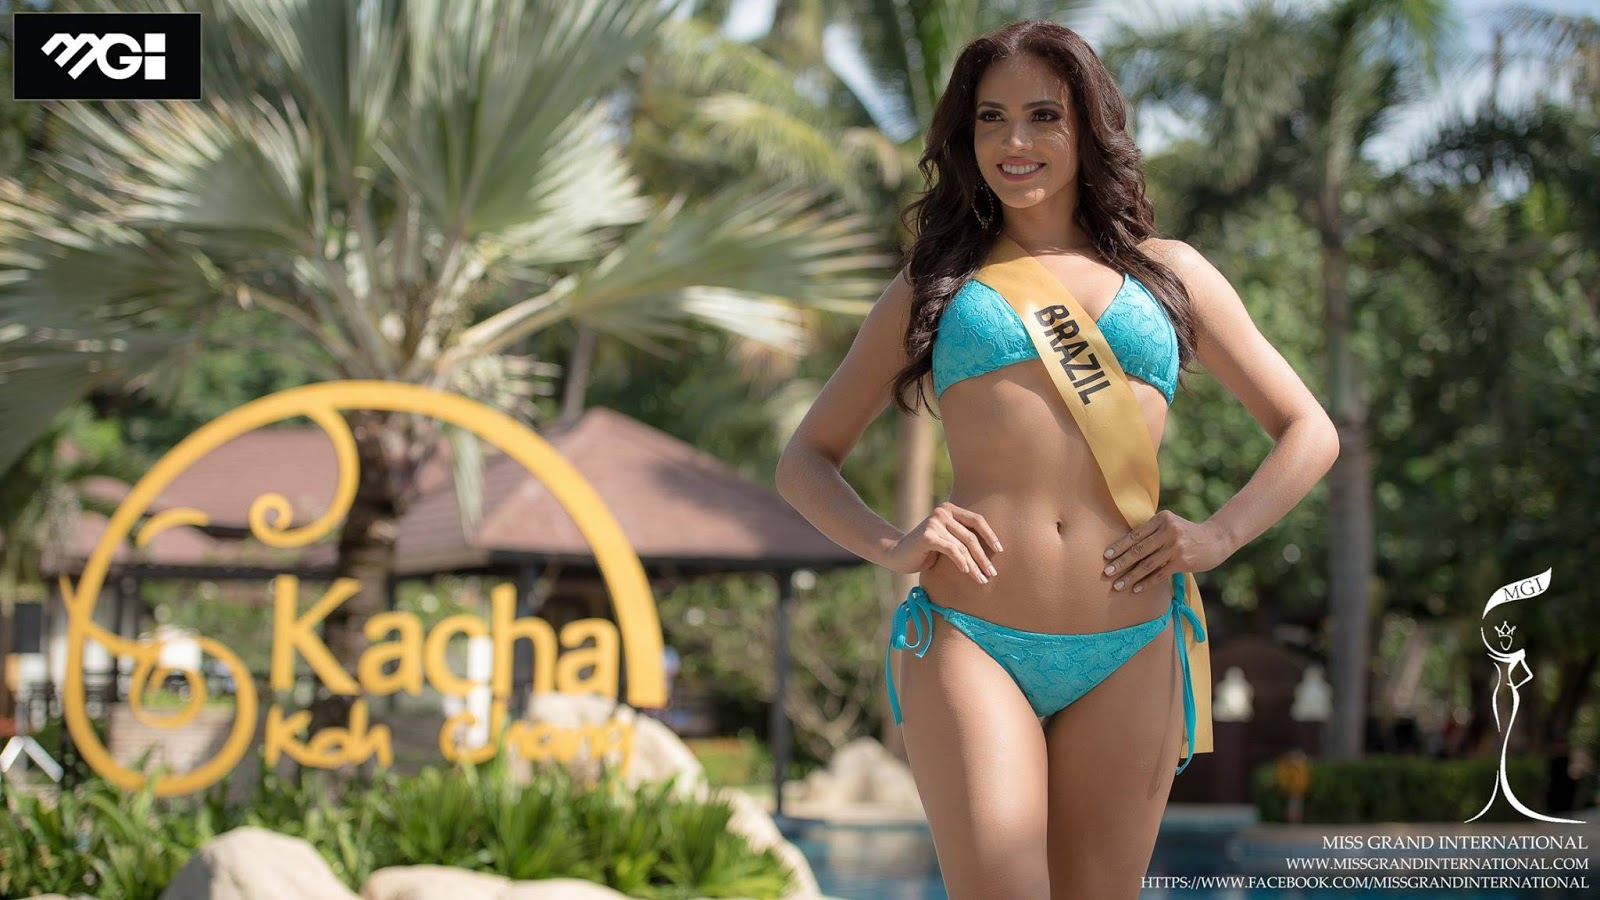 paula gomes (paolla), top 10 de miss grand international 2015. 1084_m11